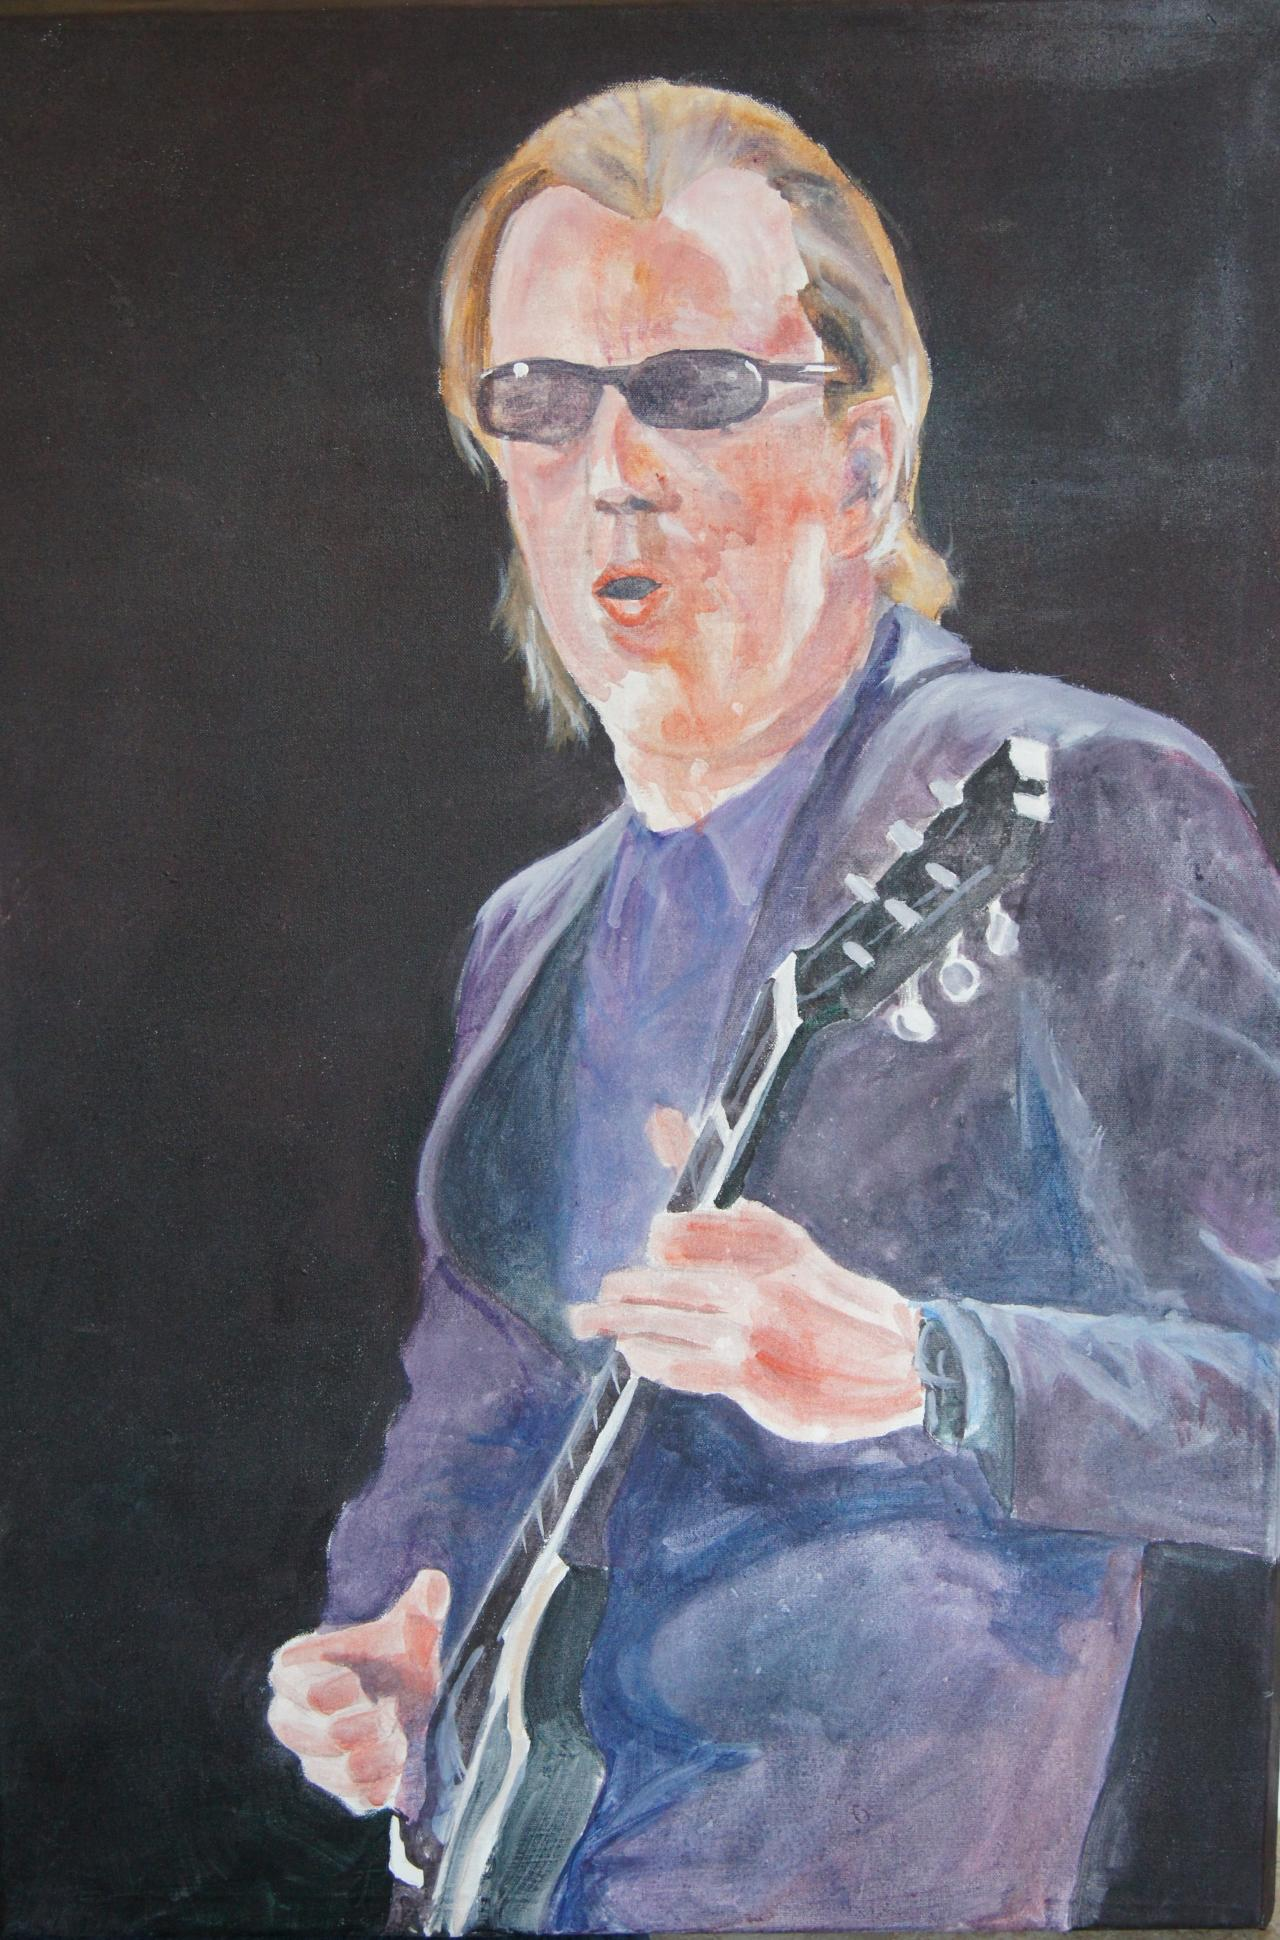 painting of man in black suit playing a guitar